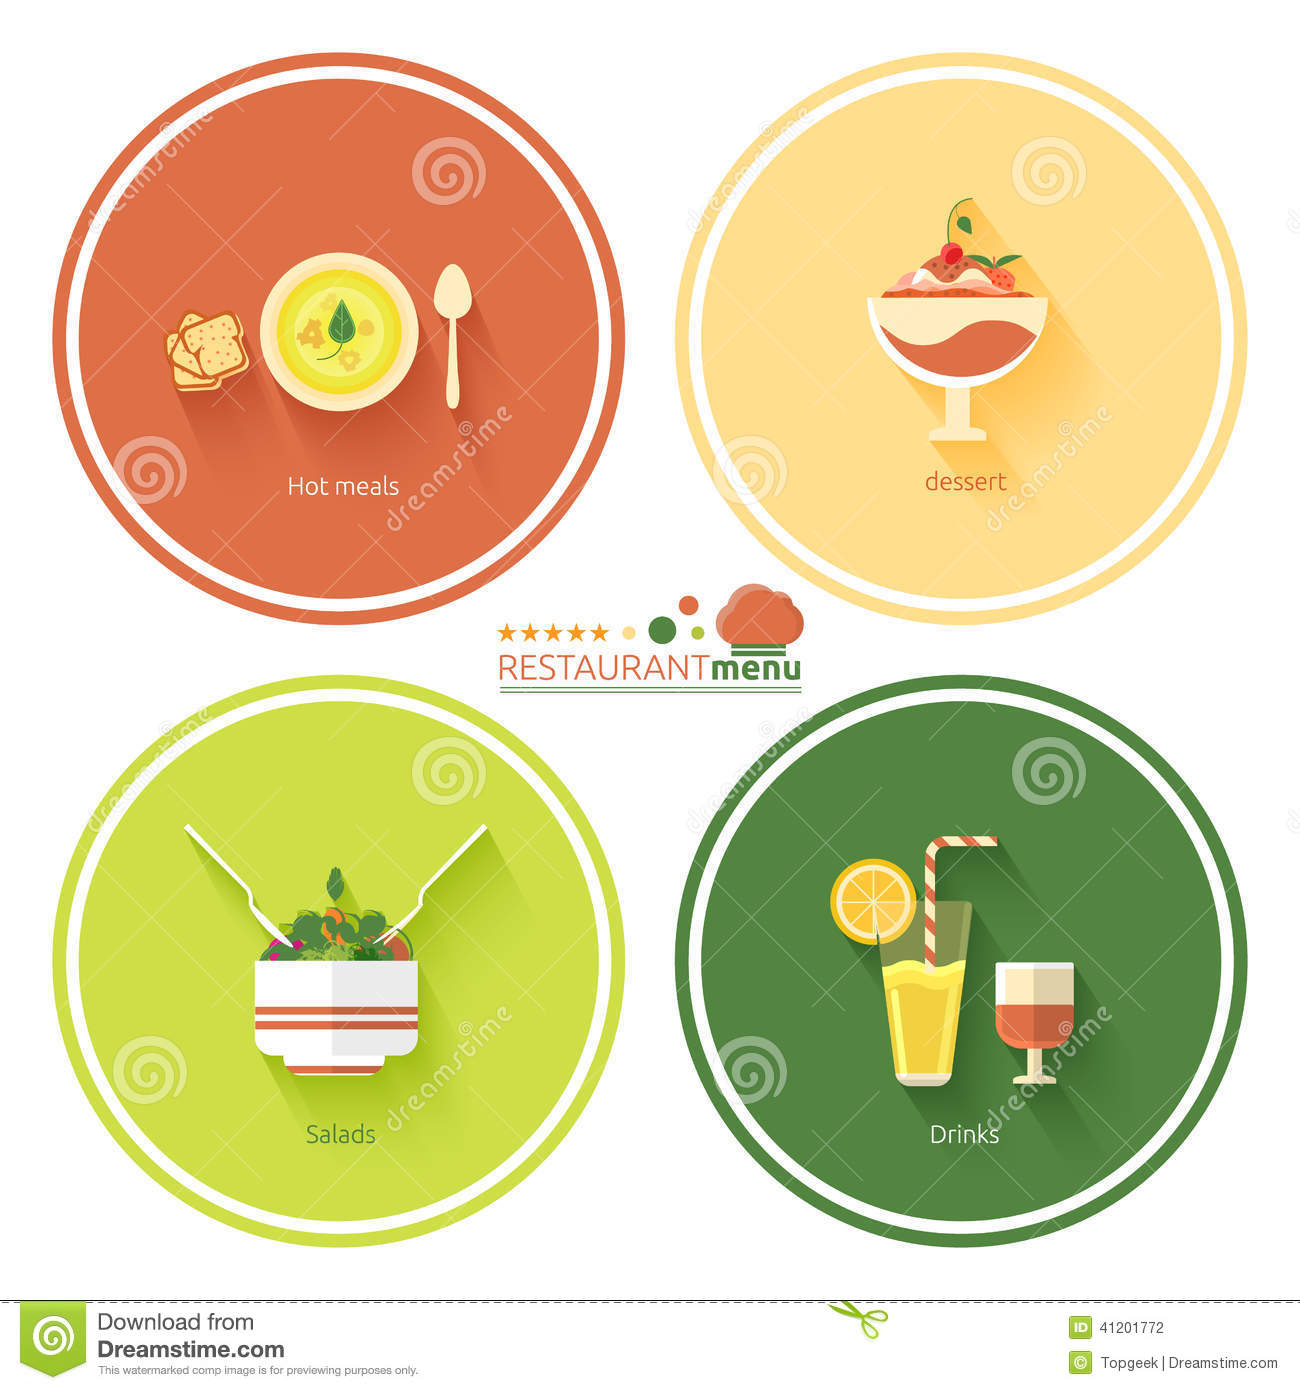 Icon Restaurant Menu Designs